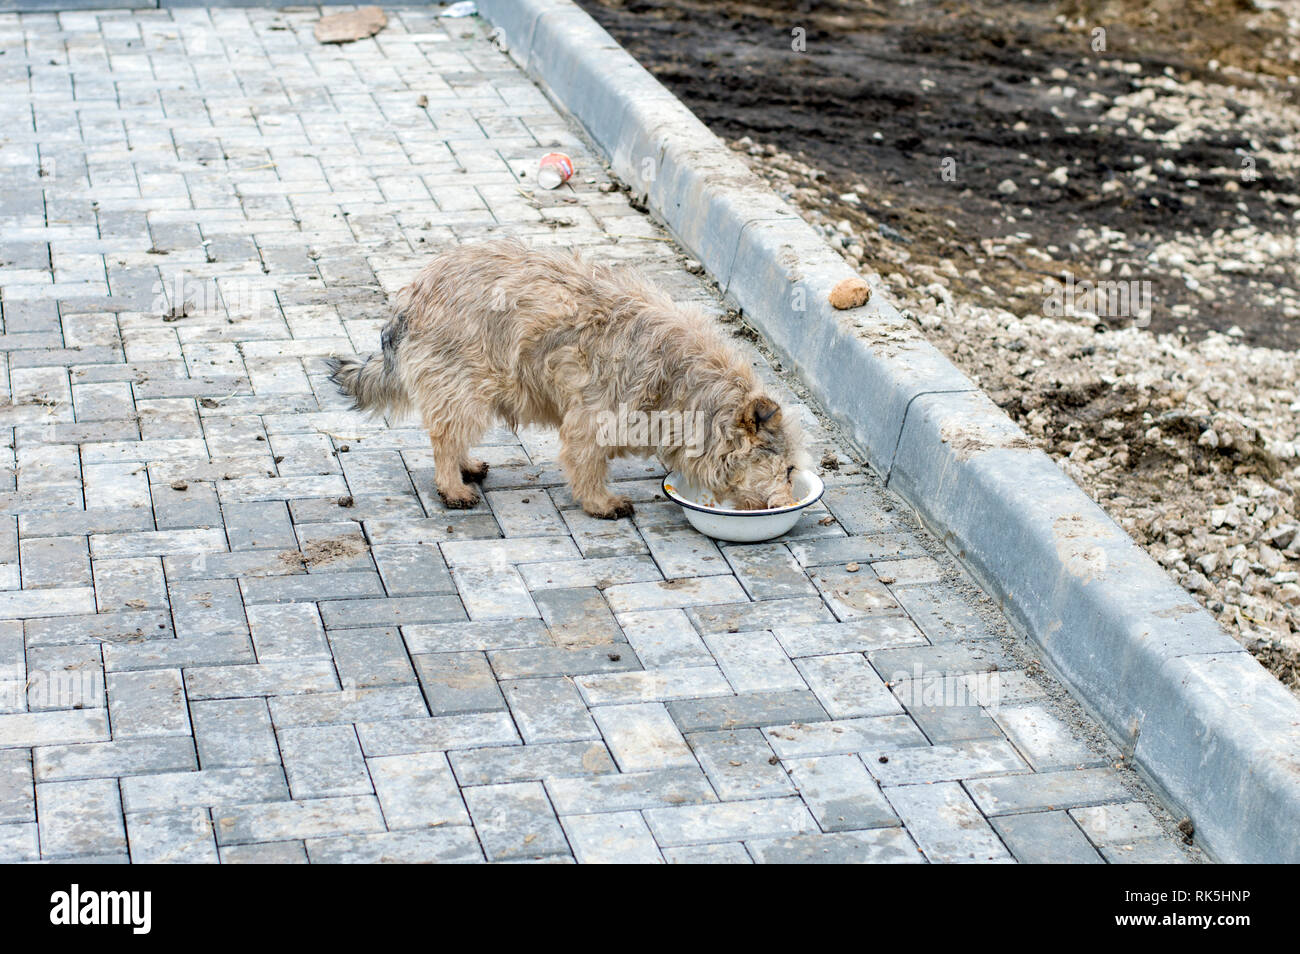 homeless dog eating on the sidewalk, theme charity and mercy, animal shelter, dog rescue, volunteer work - Stock Image